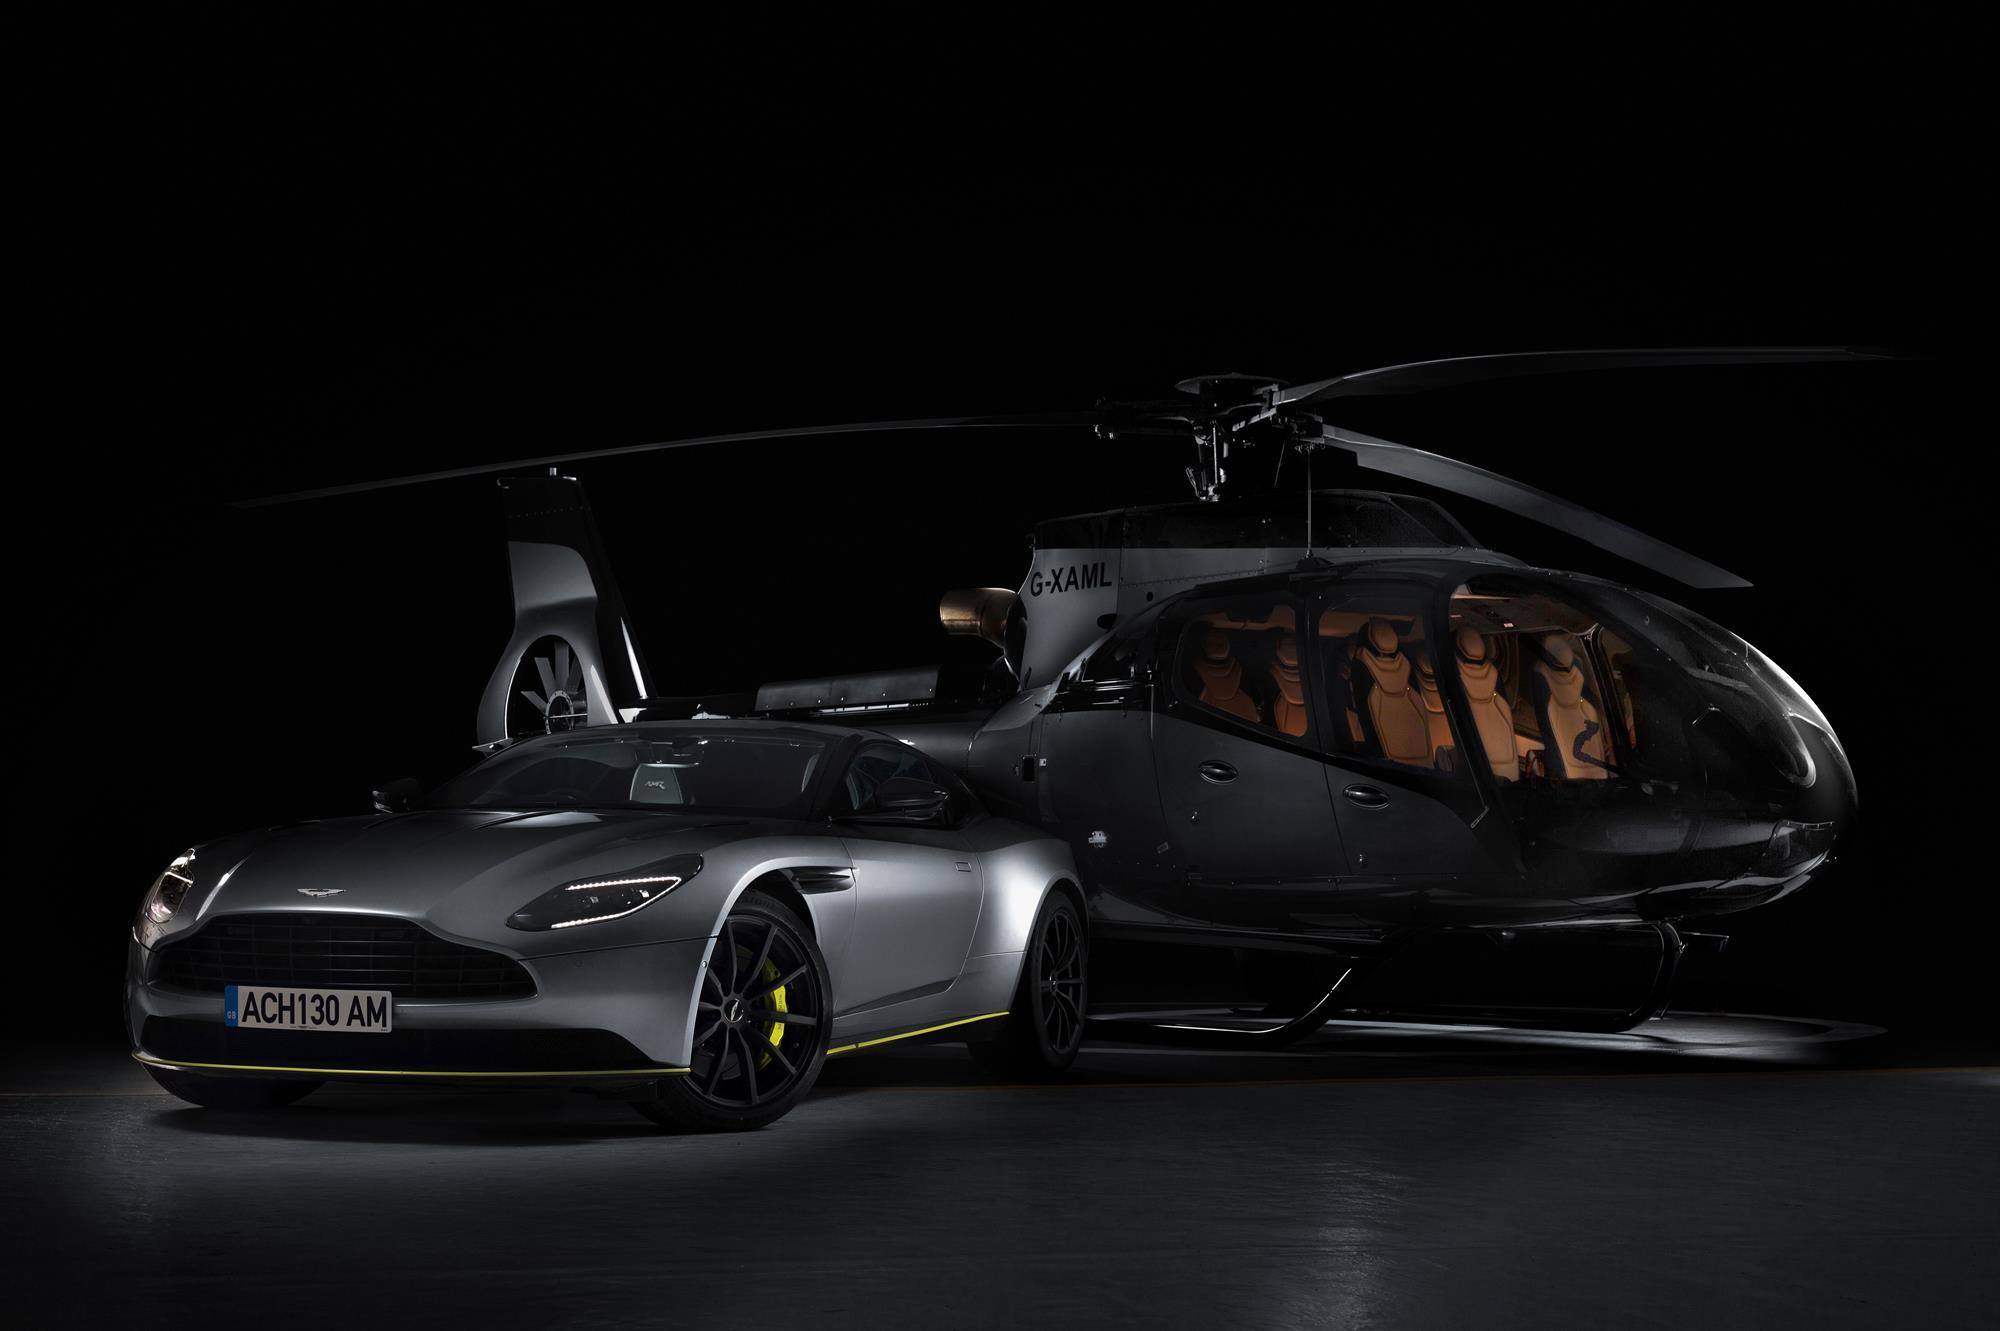 Airbus Corporate Helicopters And Aston Martin Launch Special Edition Ach130 News Flight Global